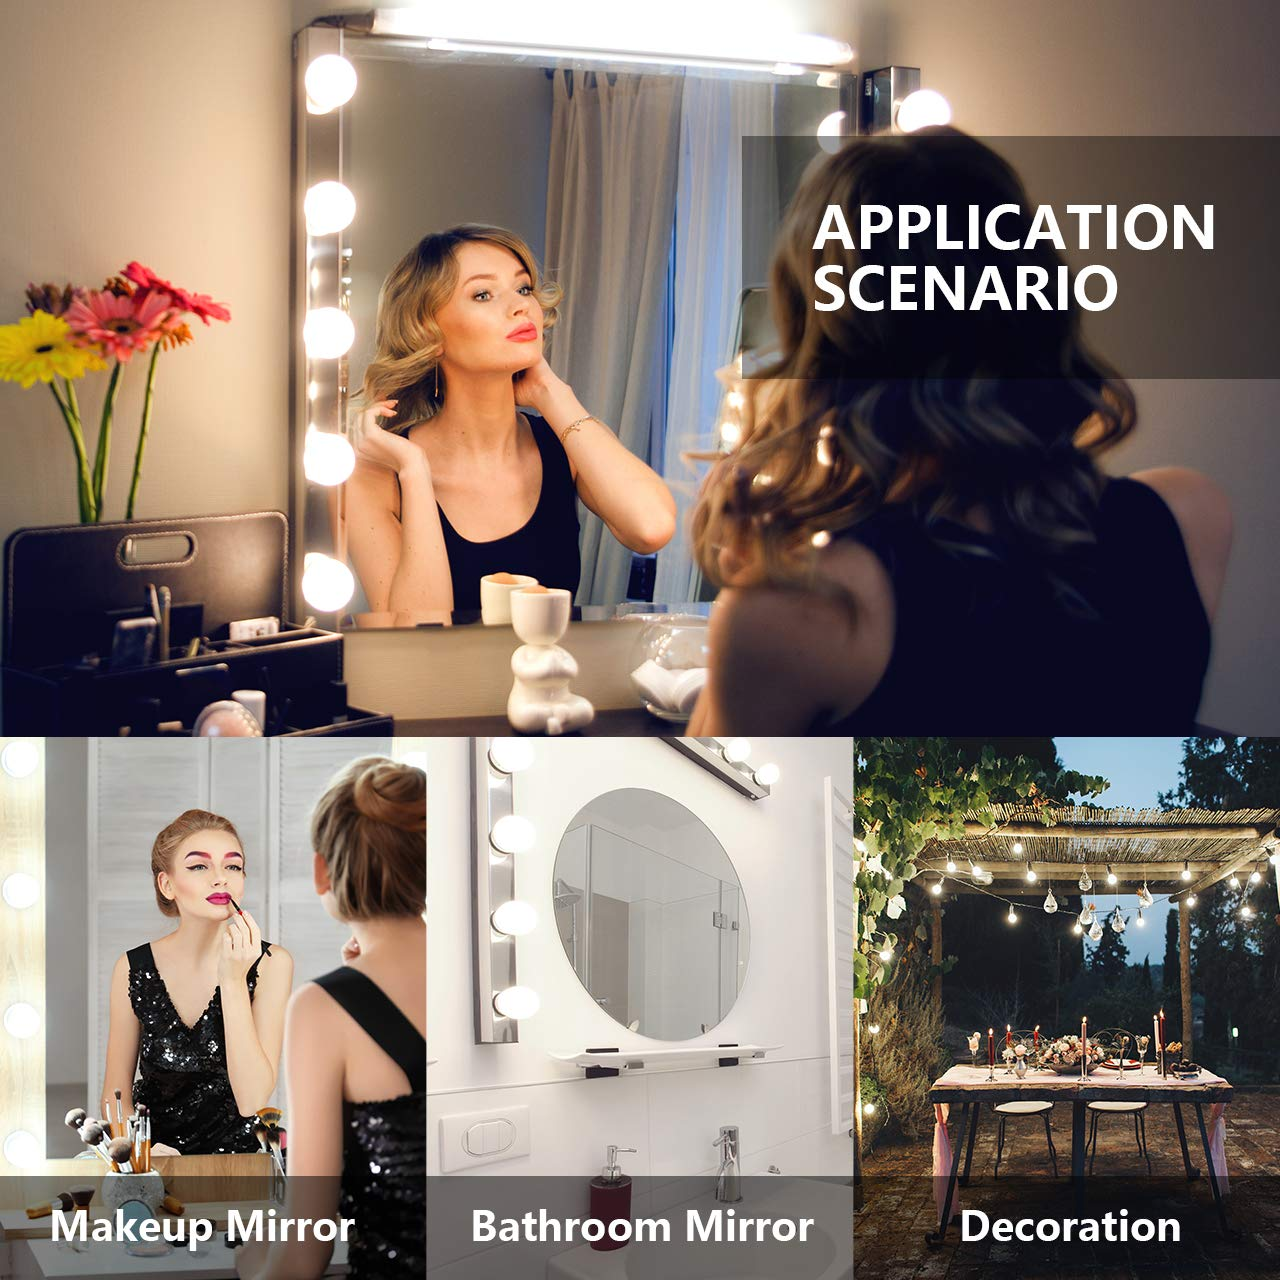 Nicewell Vanity Mirror Lights, Hollywood Style LED Makeup Mirror Lights Kit with 10 Dimmable Daylight White Light Bulbs for Vanity Table and Bathroom Dressing Room Mirror(Mirror not Included) by Nicewell (Image #7)